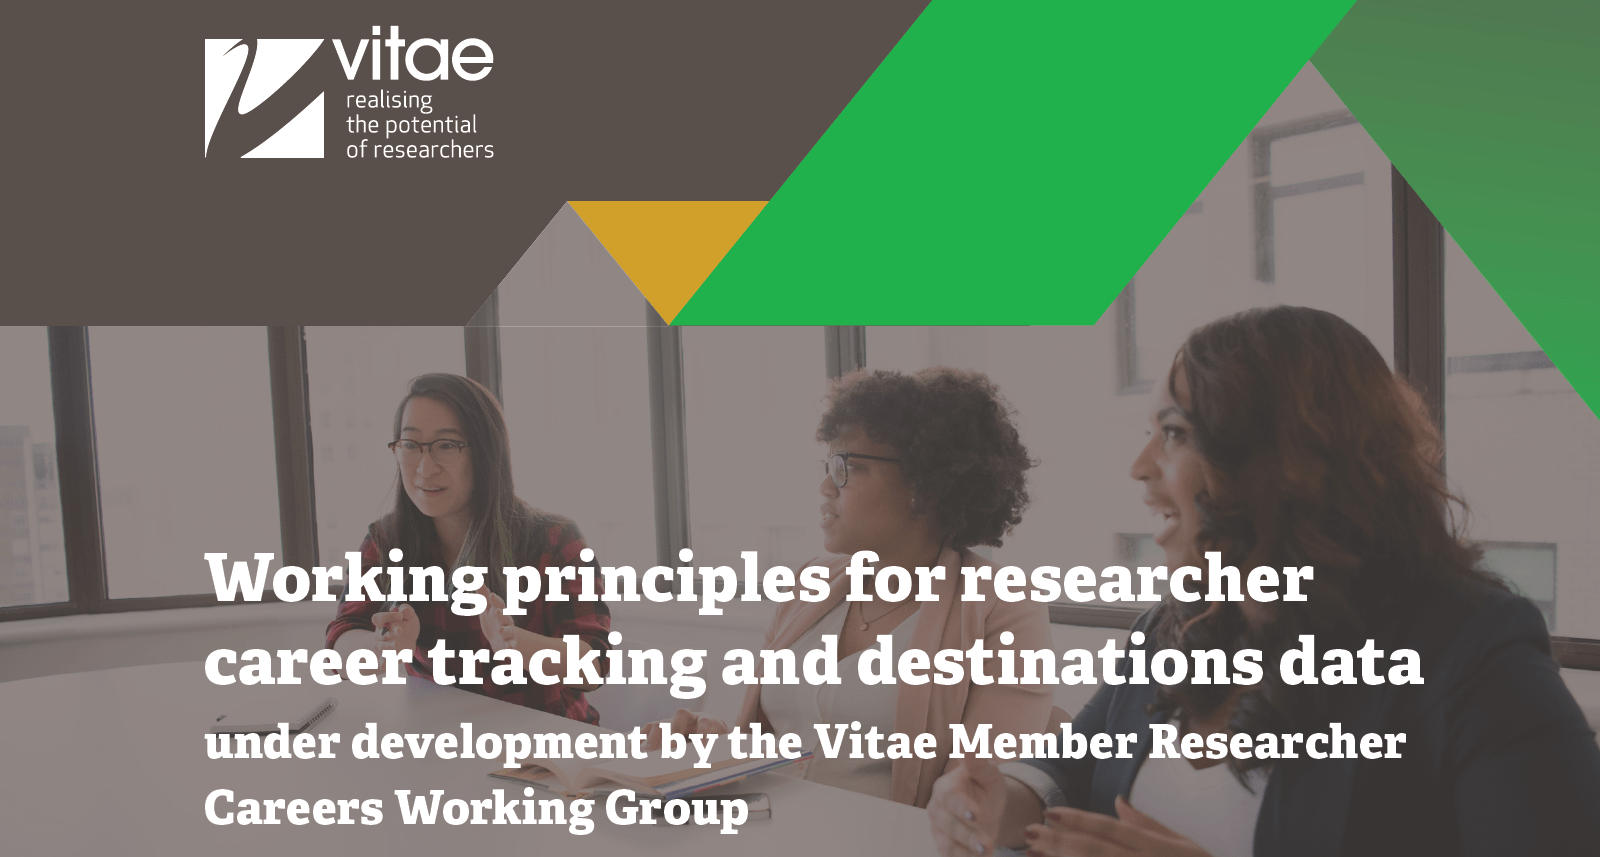 Working principles for researcher career tracking